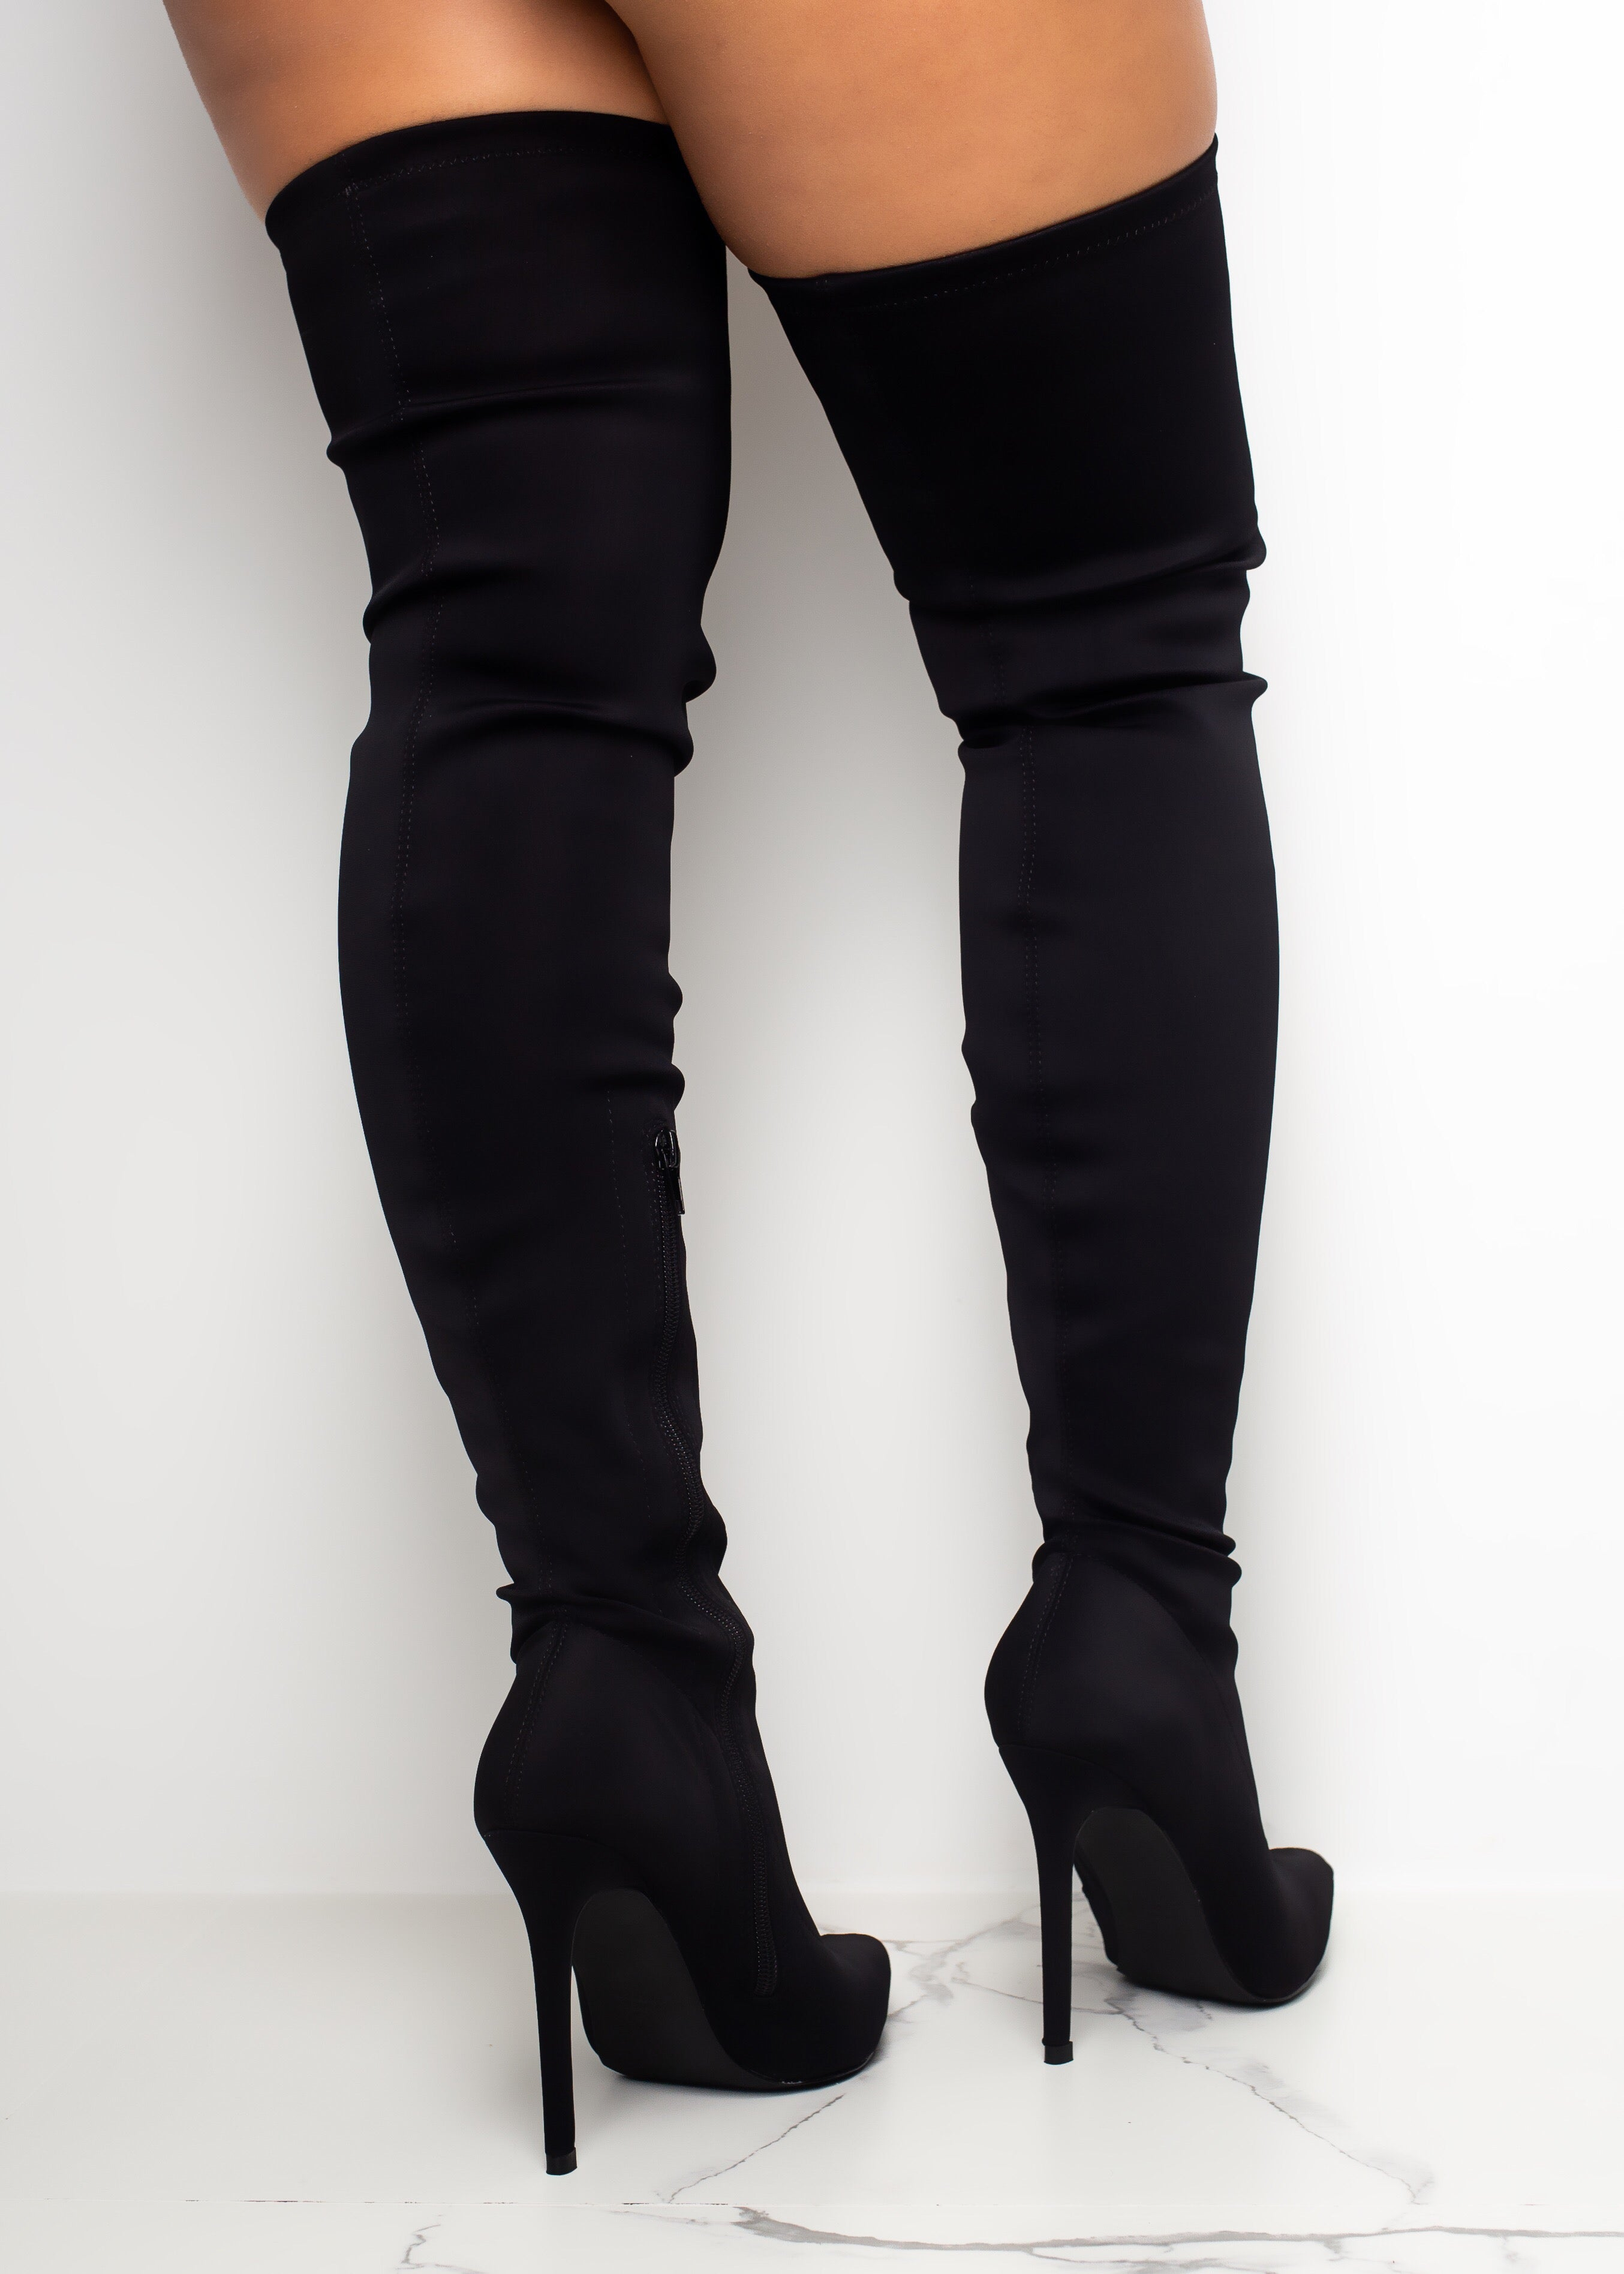 Over The Top Black Boots